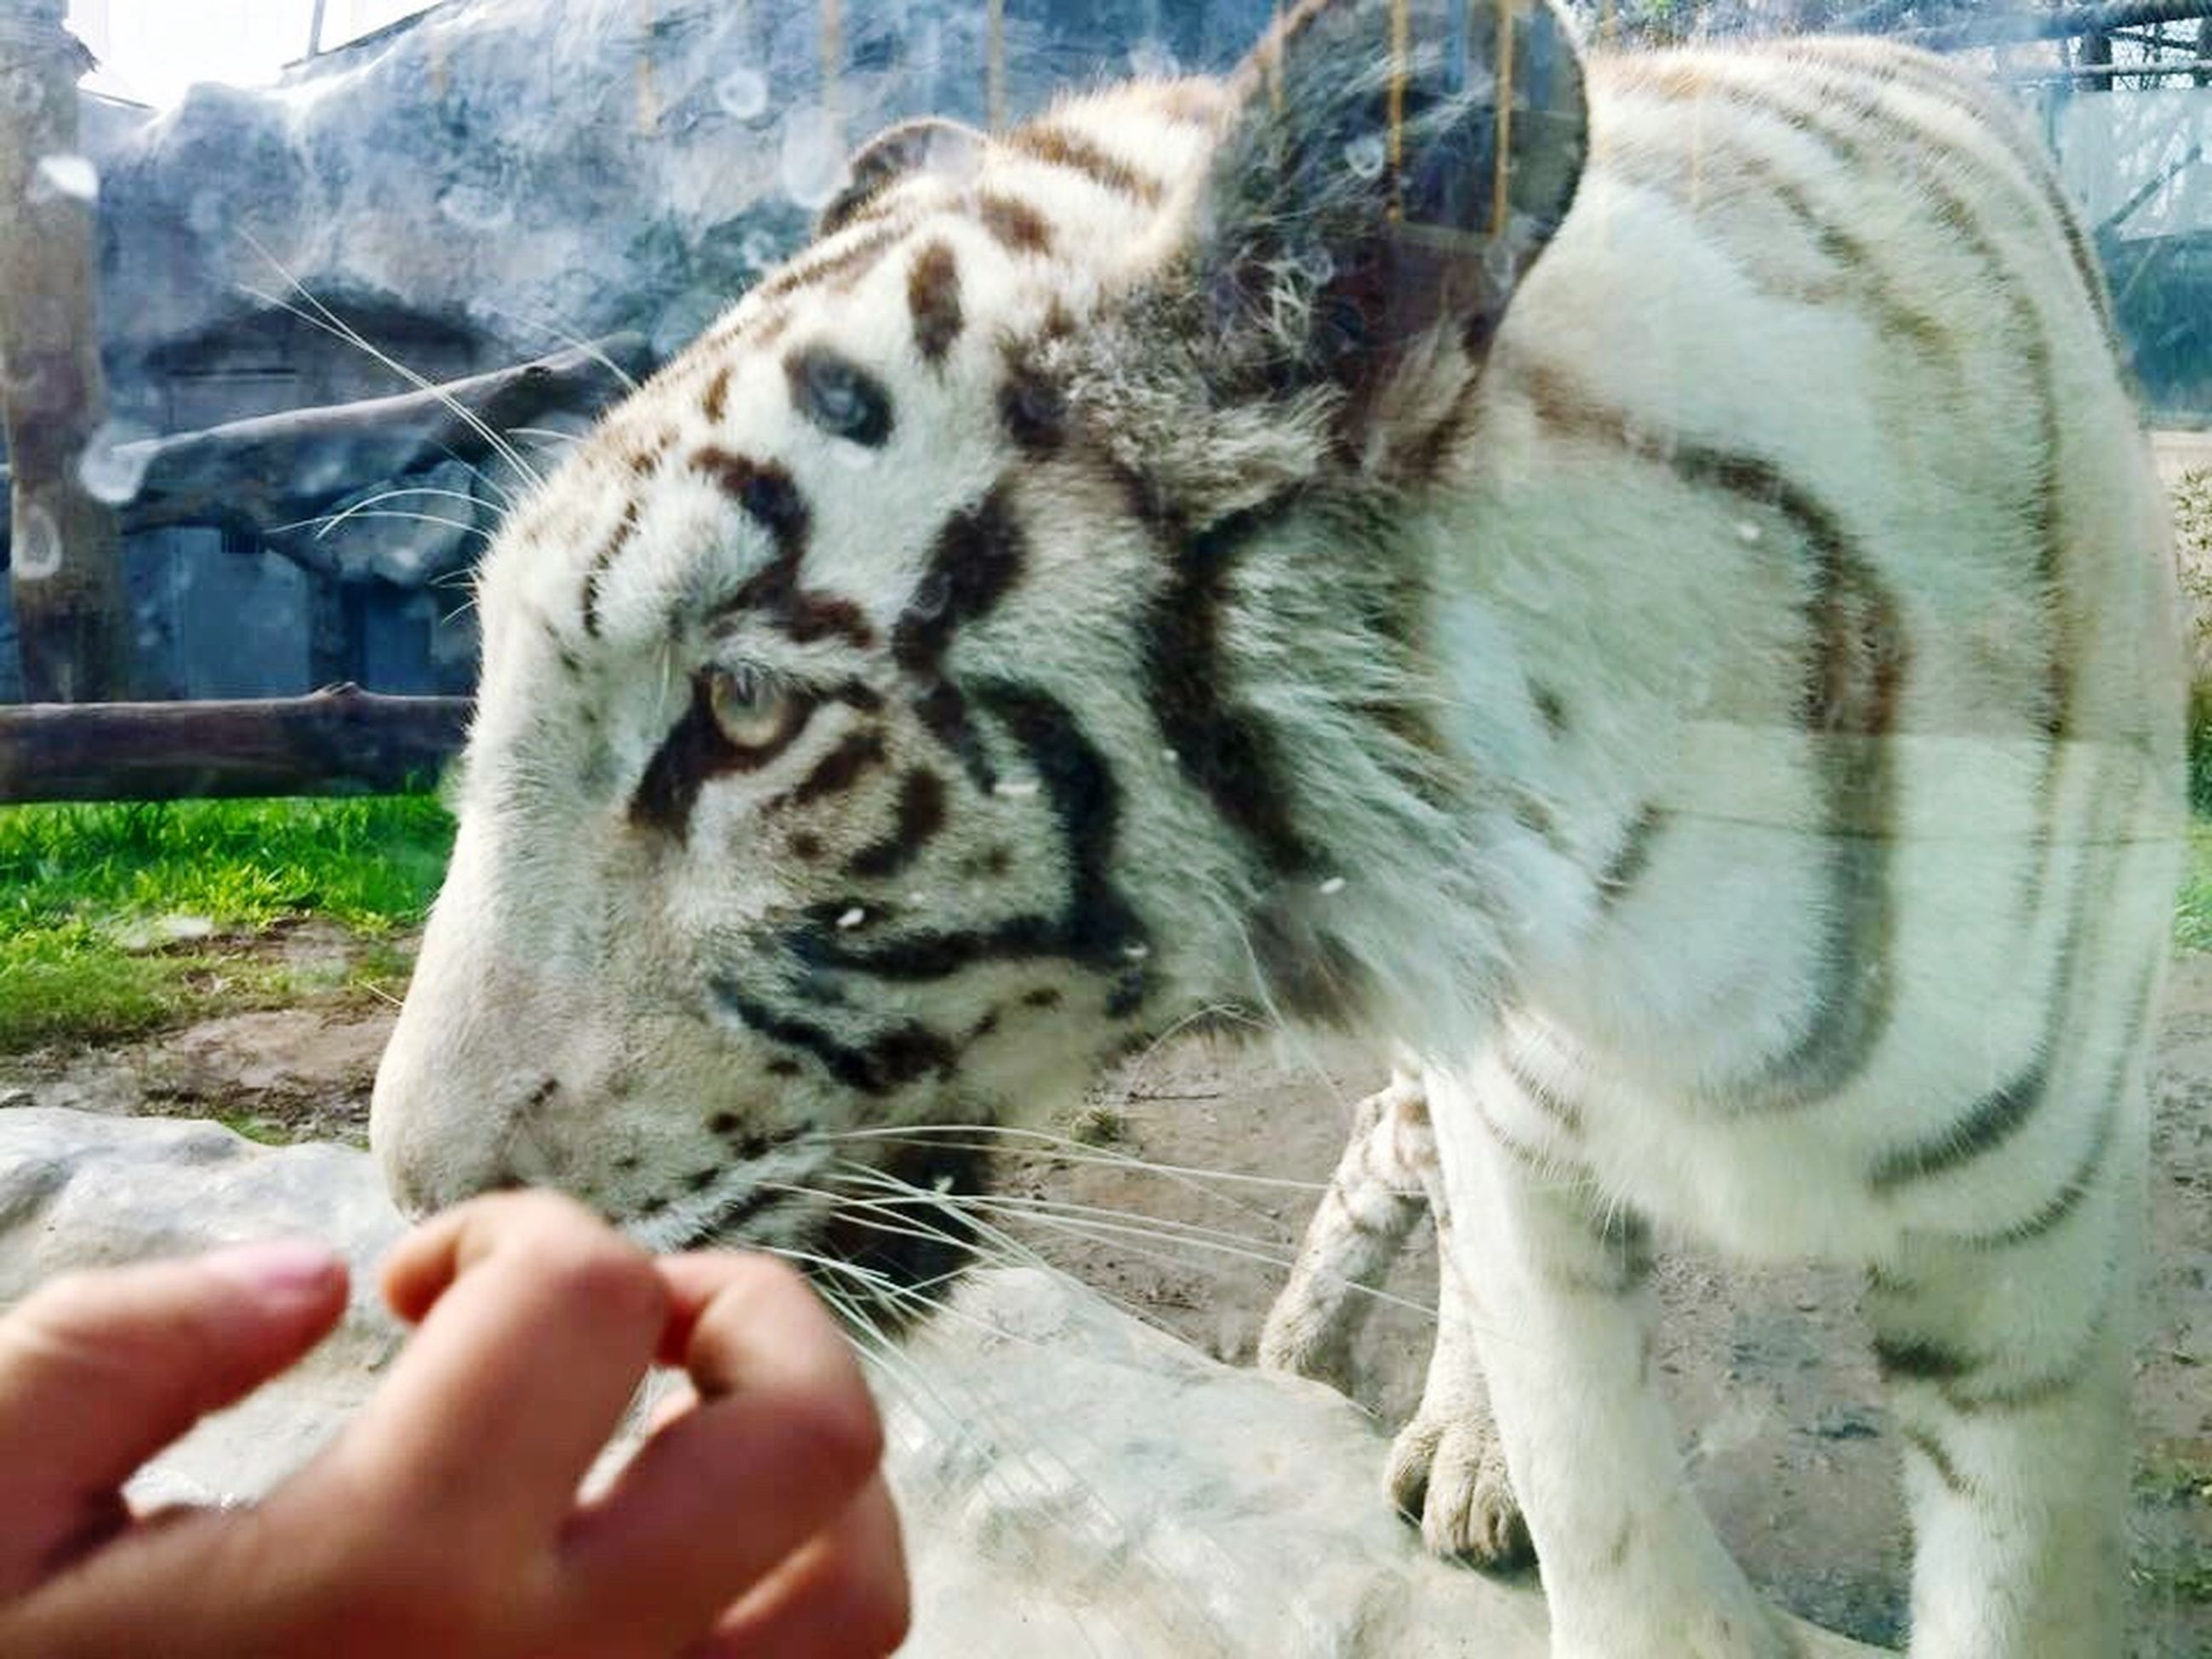 animal themes, one animal, human hand, mammal, one person, human body part, tiger, real people, close-up, day, white tiger, nature, outdoors